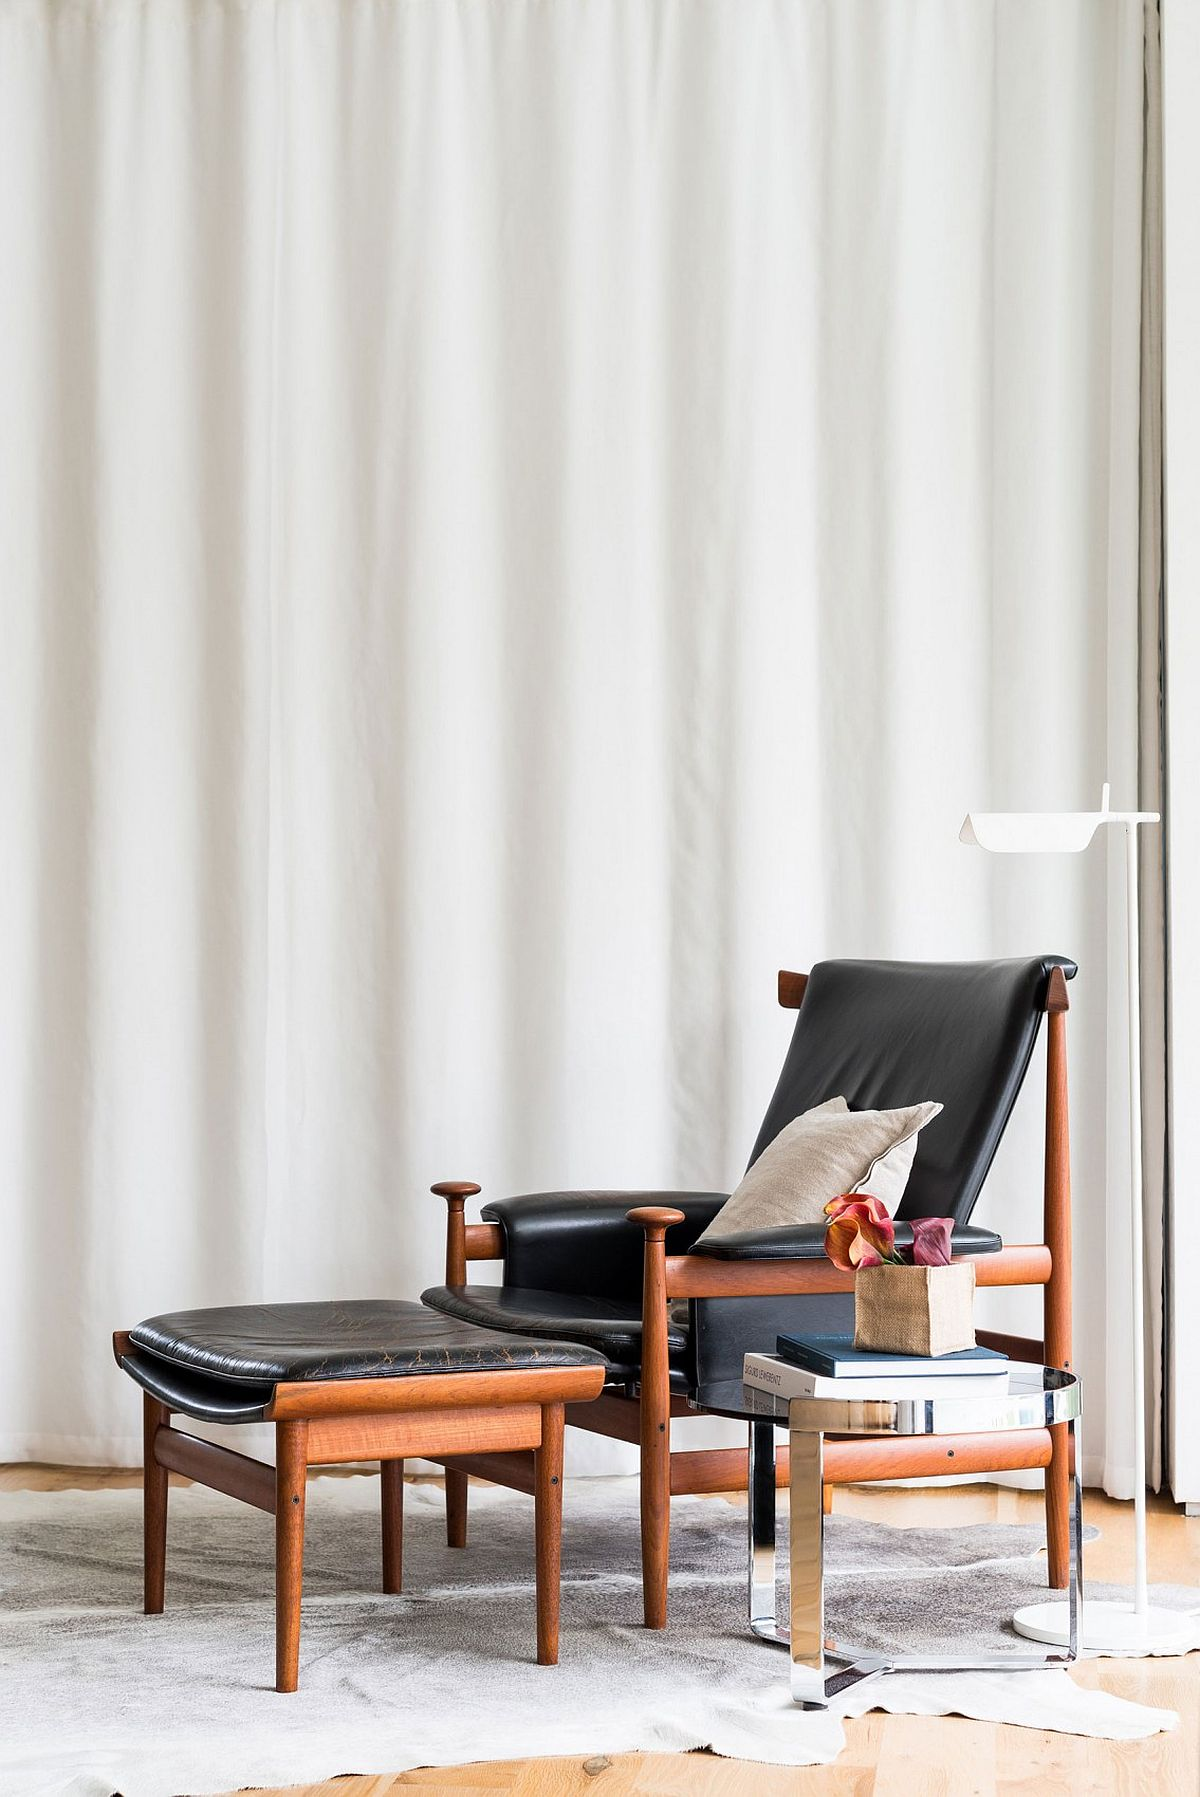 Craft a classy reading nook with confortable lounger and a simple side table